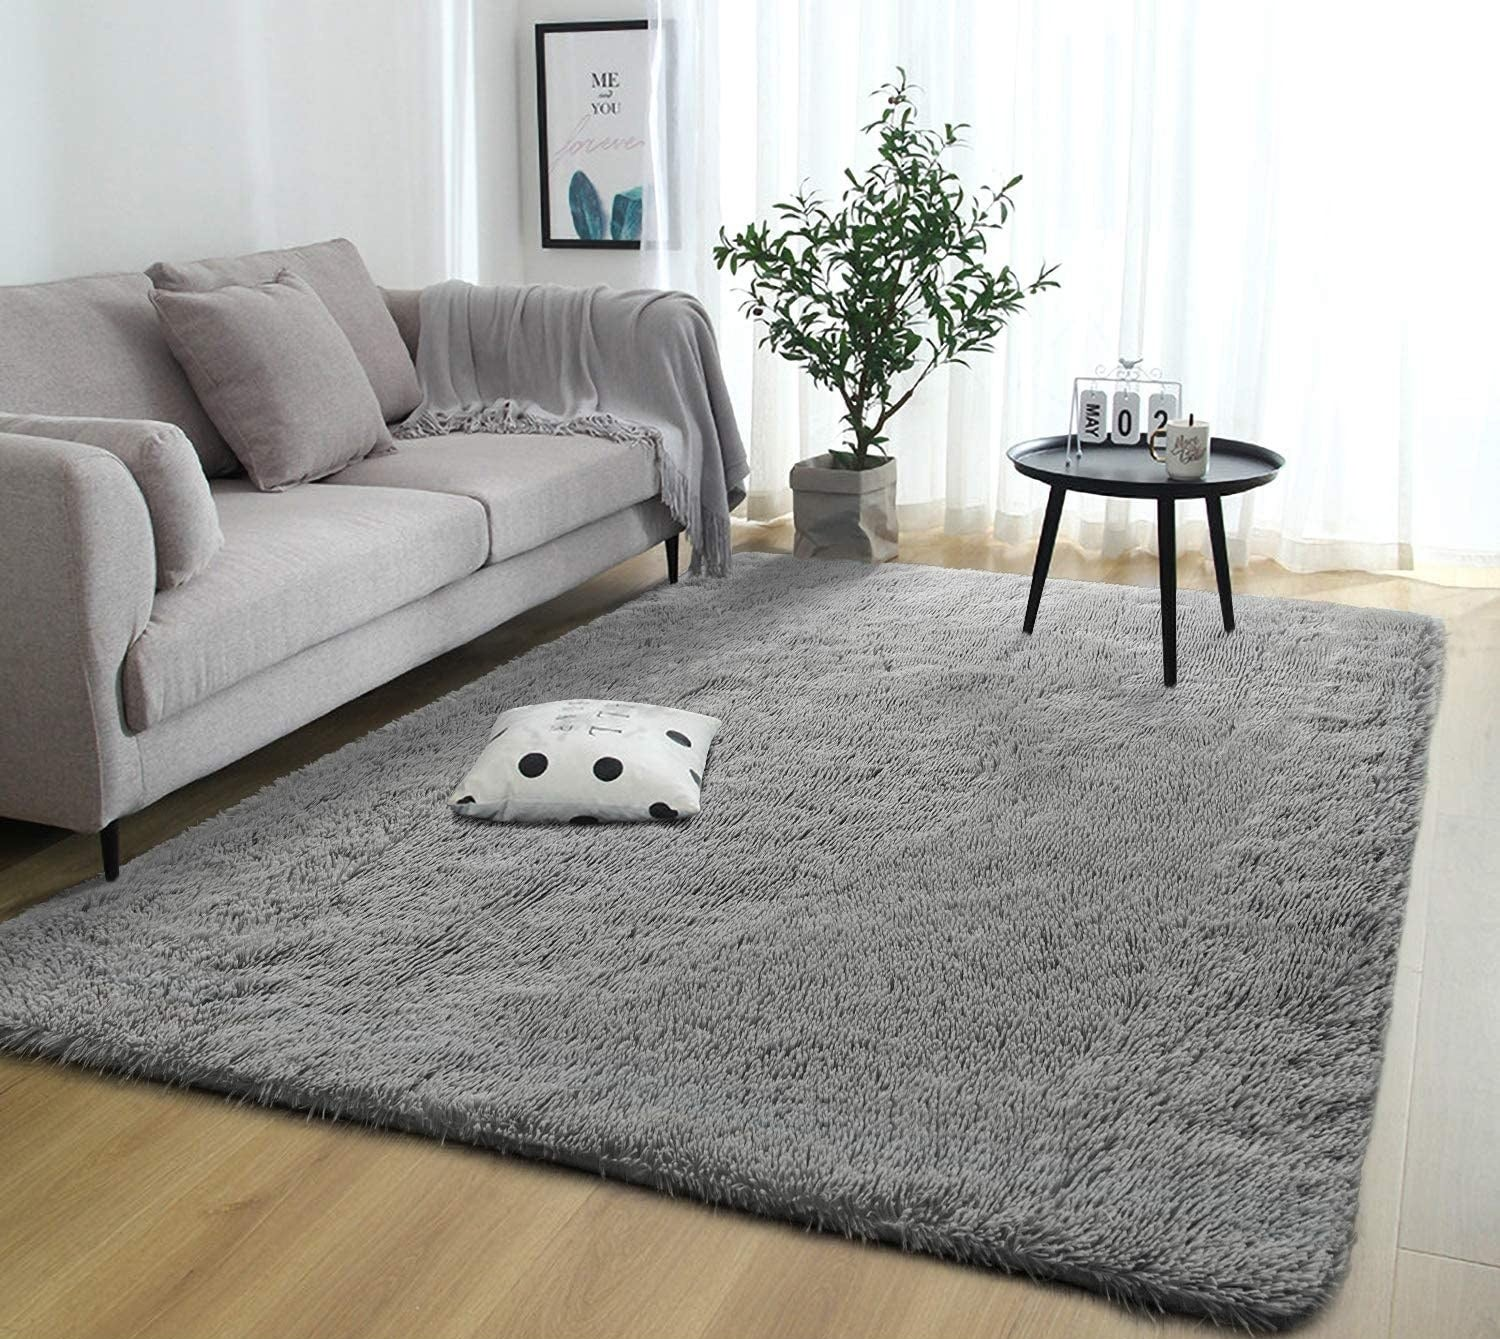 The rug in a living room with a table on top